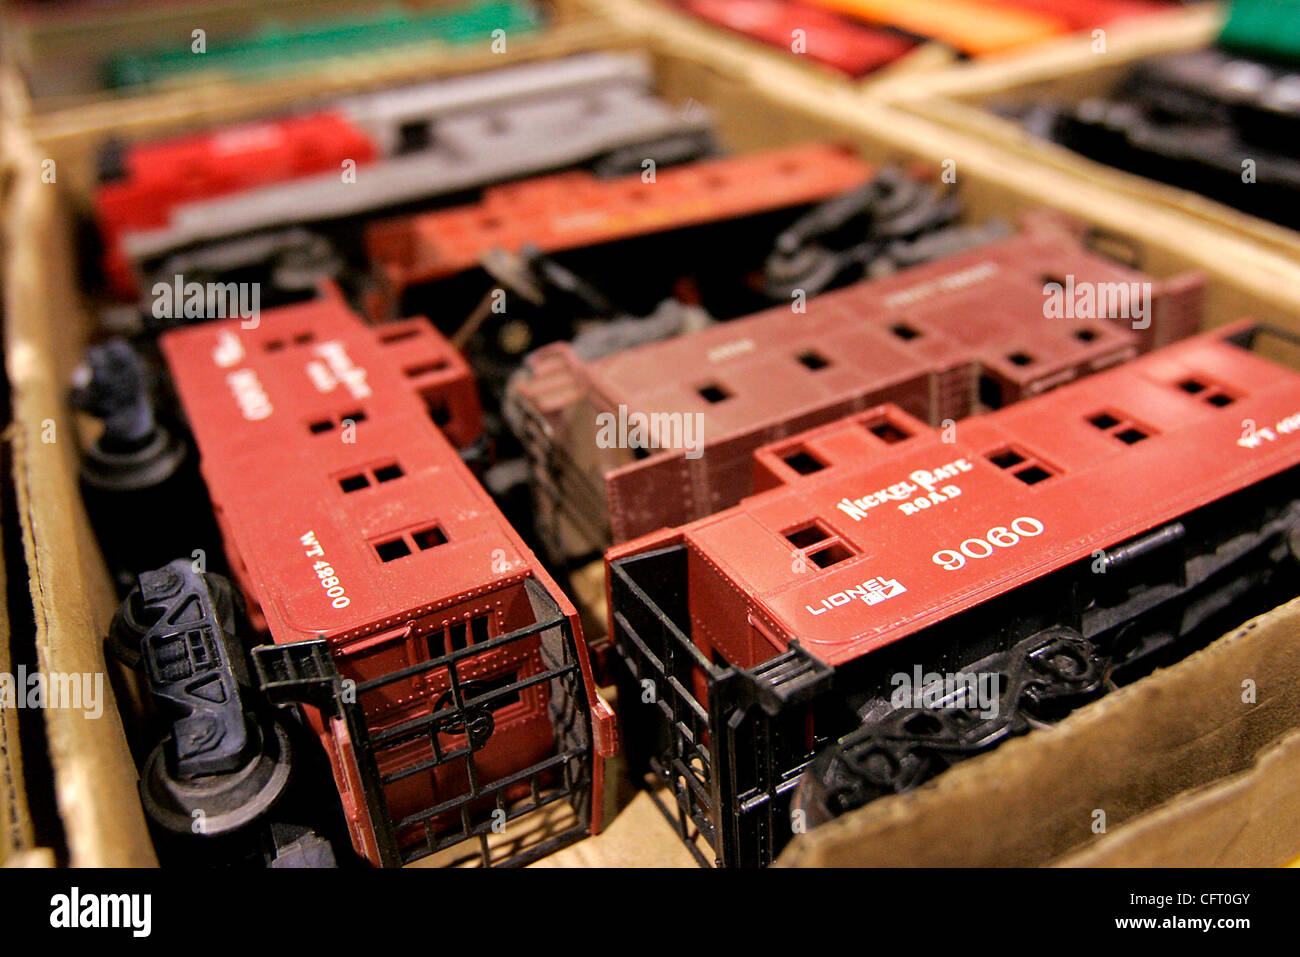 Collectabl Stock Photos & Collectabl Stock Images - Alamy